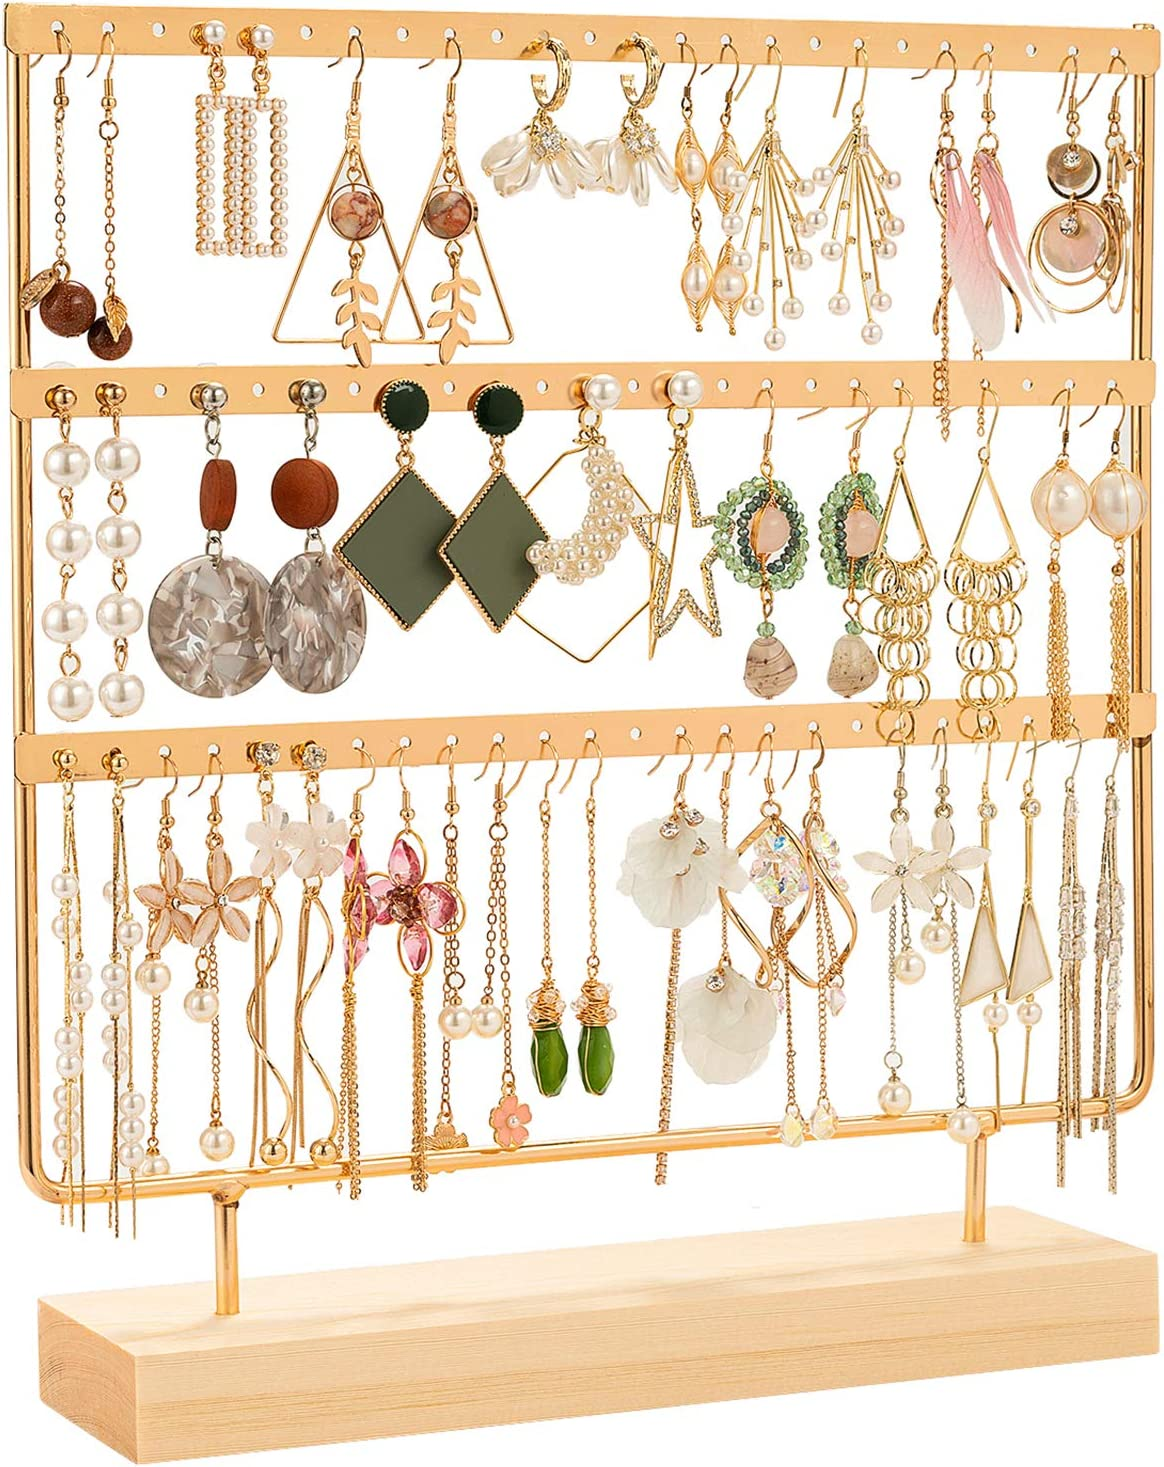 Amazon Com Dhmk Earring Stand Organizer Jewelry Display Rack 3 Tier Ear Stud Holder Jewelry 69 Holes With Wood Base Stand Display Rack For Women Girls Earring Holders Gold Home Kitchen